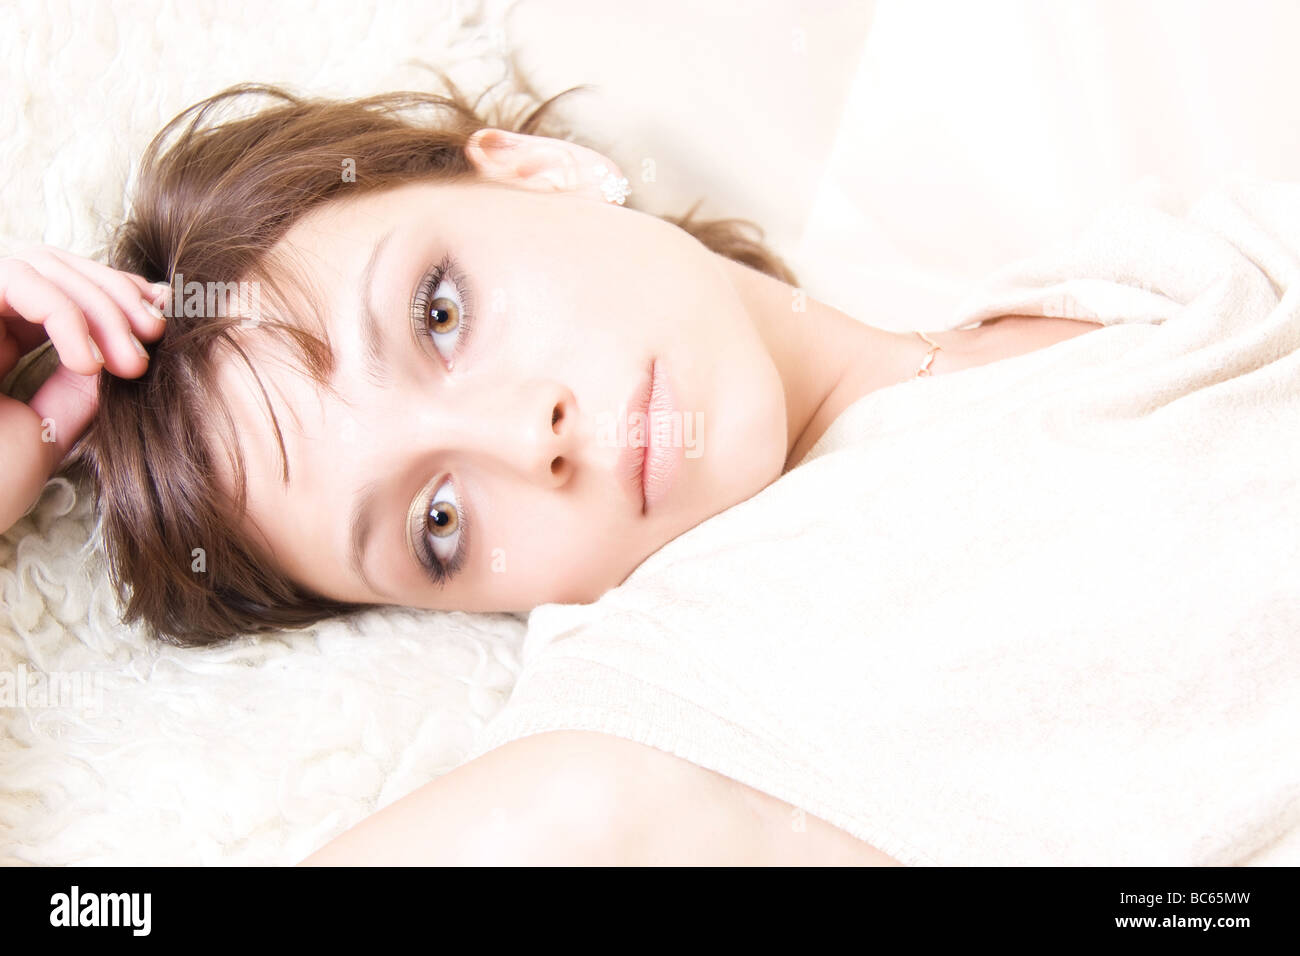 Resting woman portrait Bright lighting without shadows - Stock Image